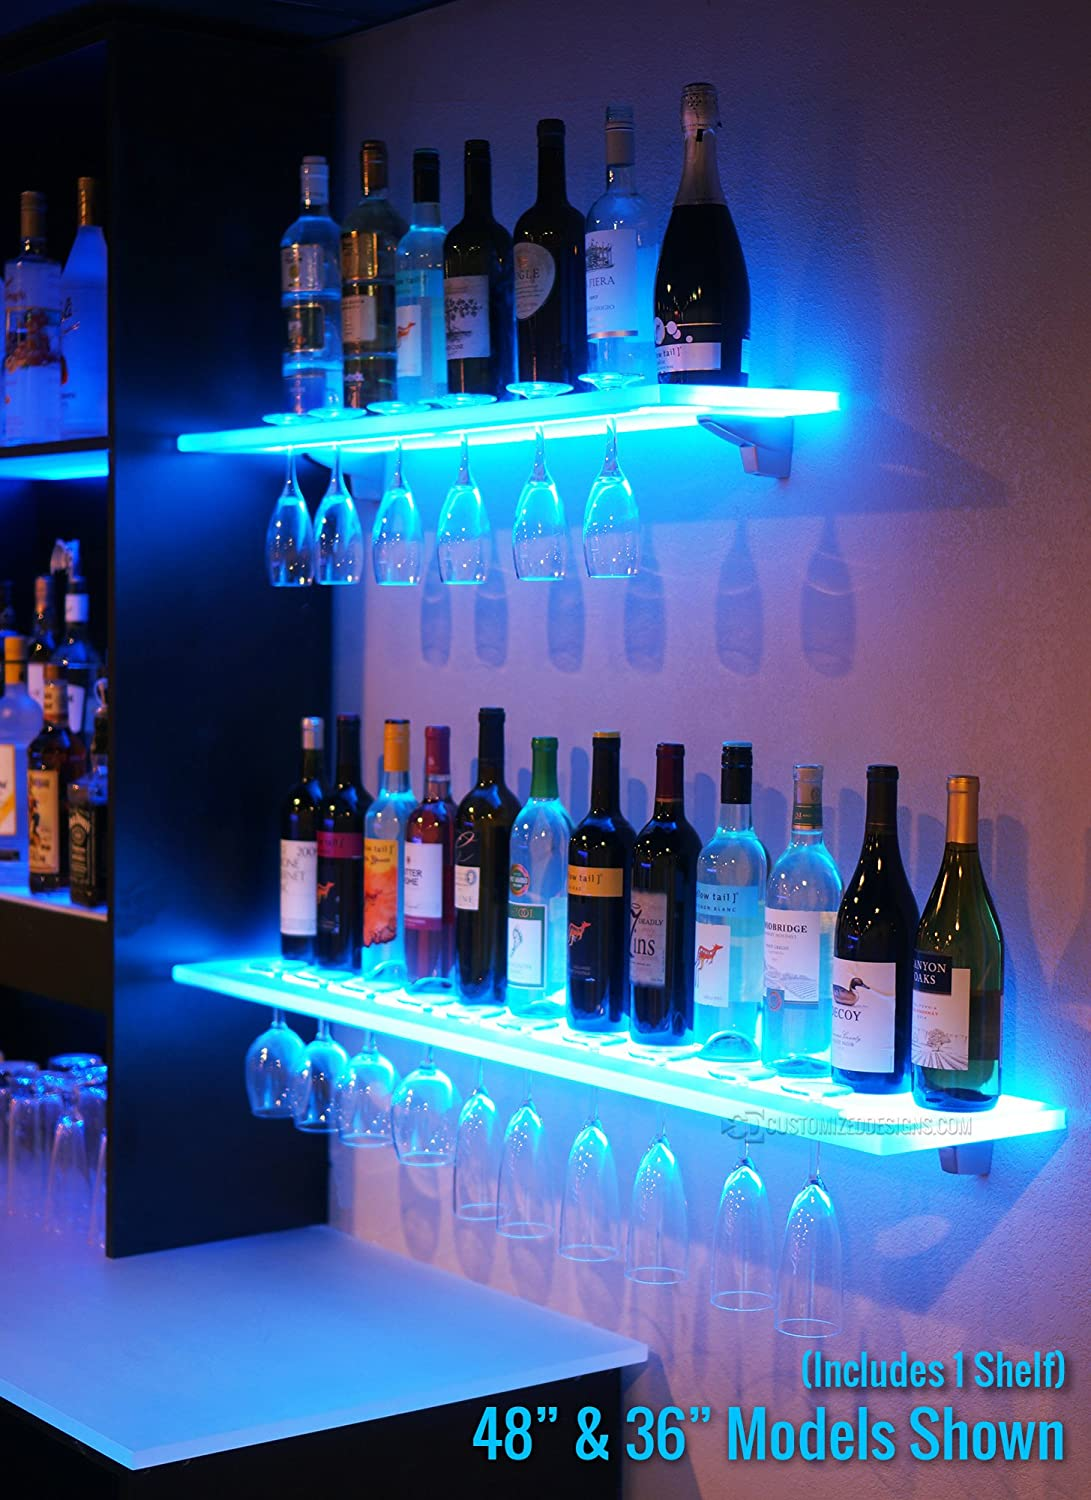 Unique Corner Wine Racks Ideas moreover Liquor Shelf Display in addition 14415 Home Bar In The Basement 10 Pics likewise V1M6D17 8k9q716d besides Krolewska Vodka. on liquor bottle shelves for bars